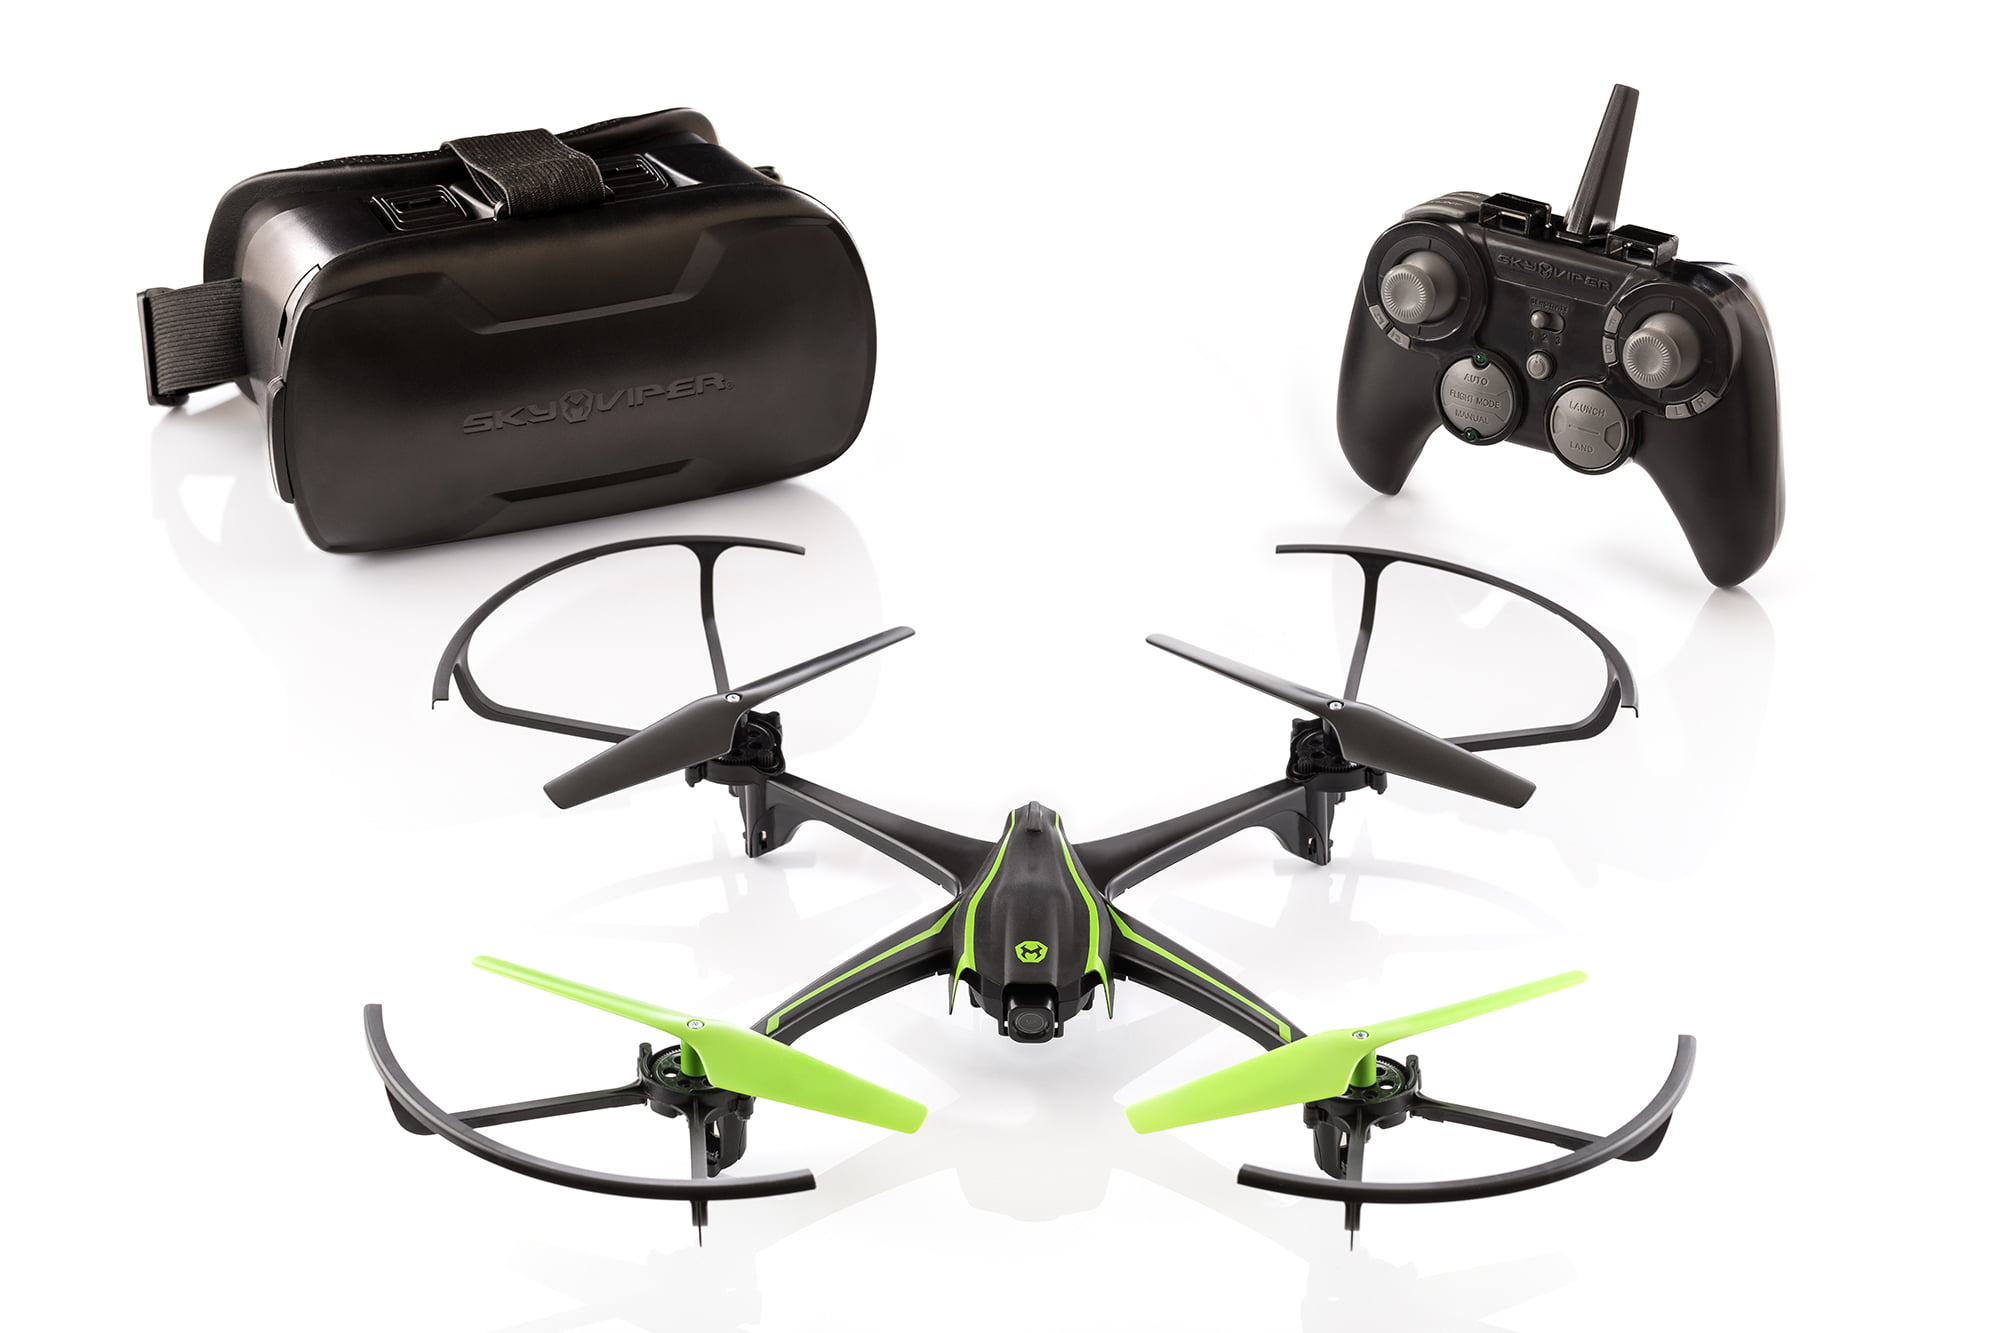 Sky Viper V2450 HD Video Streaming Drone with FPV